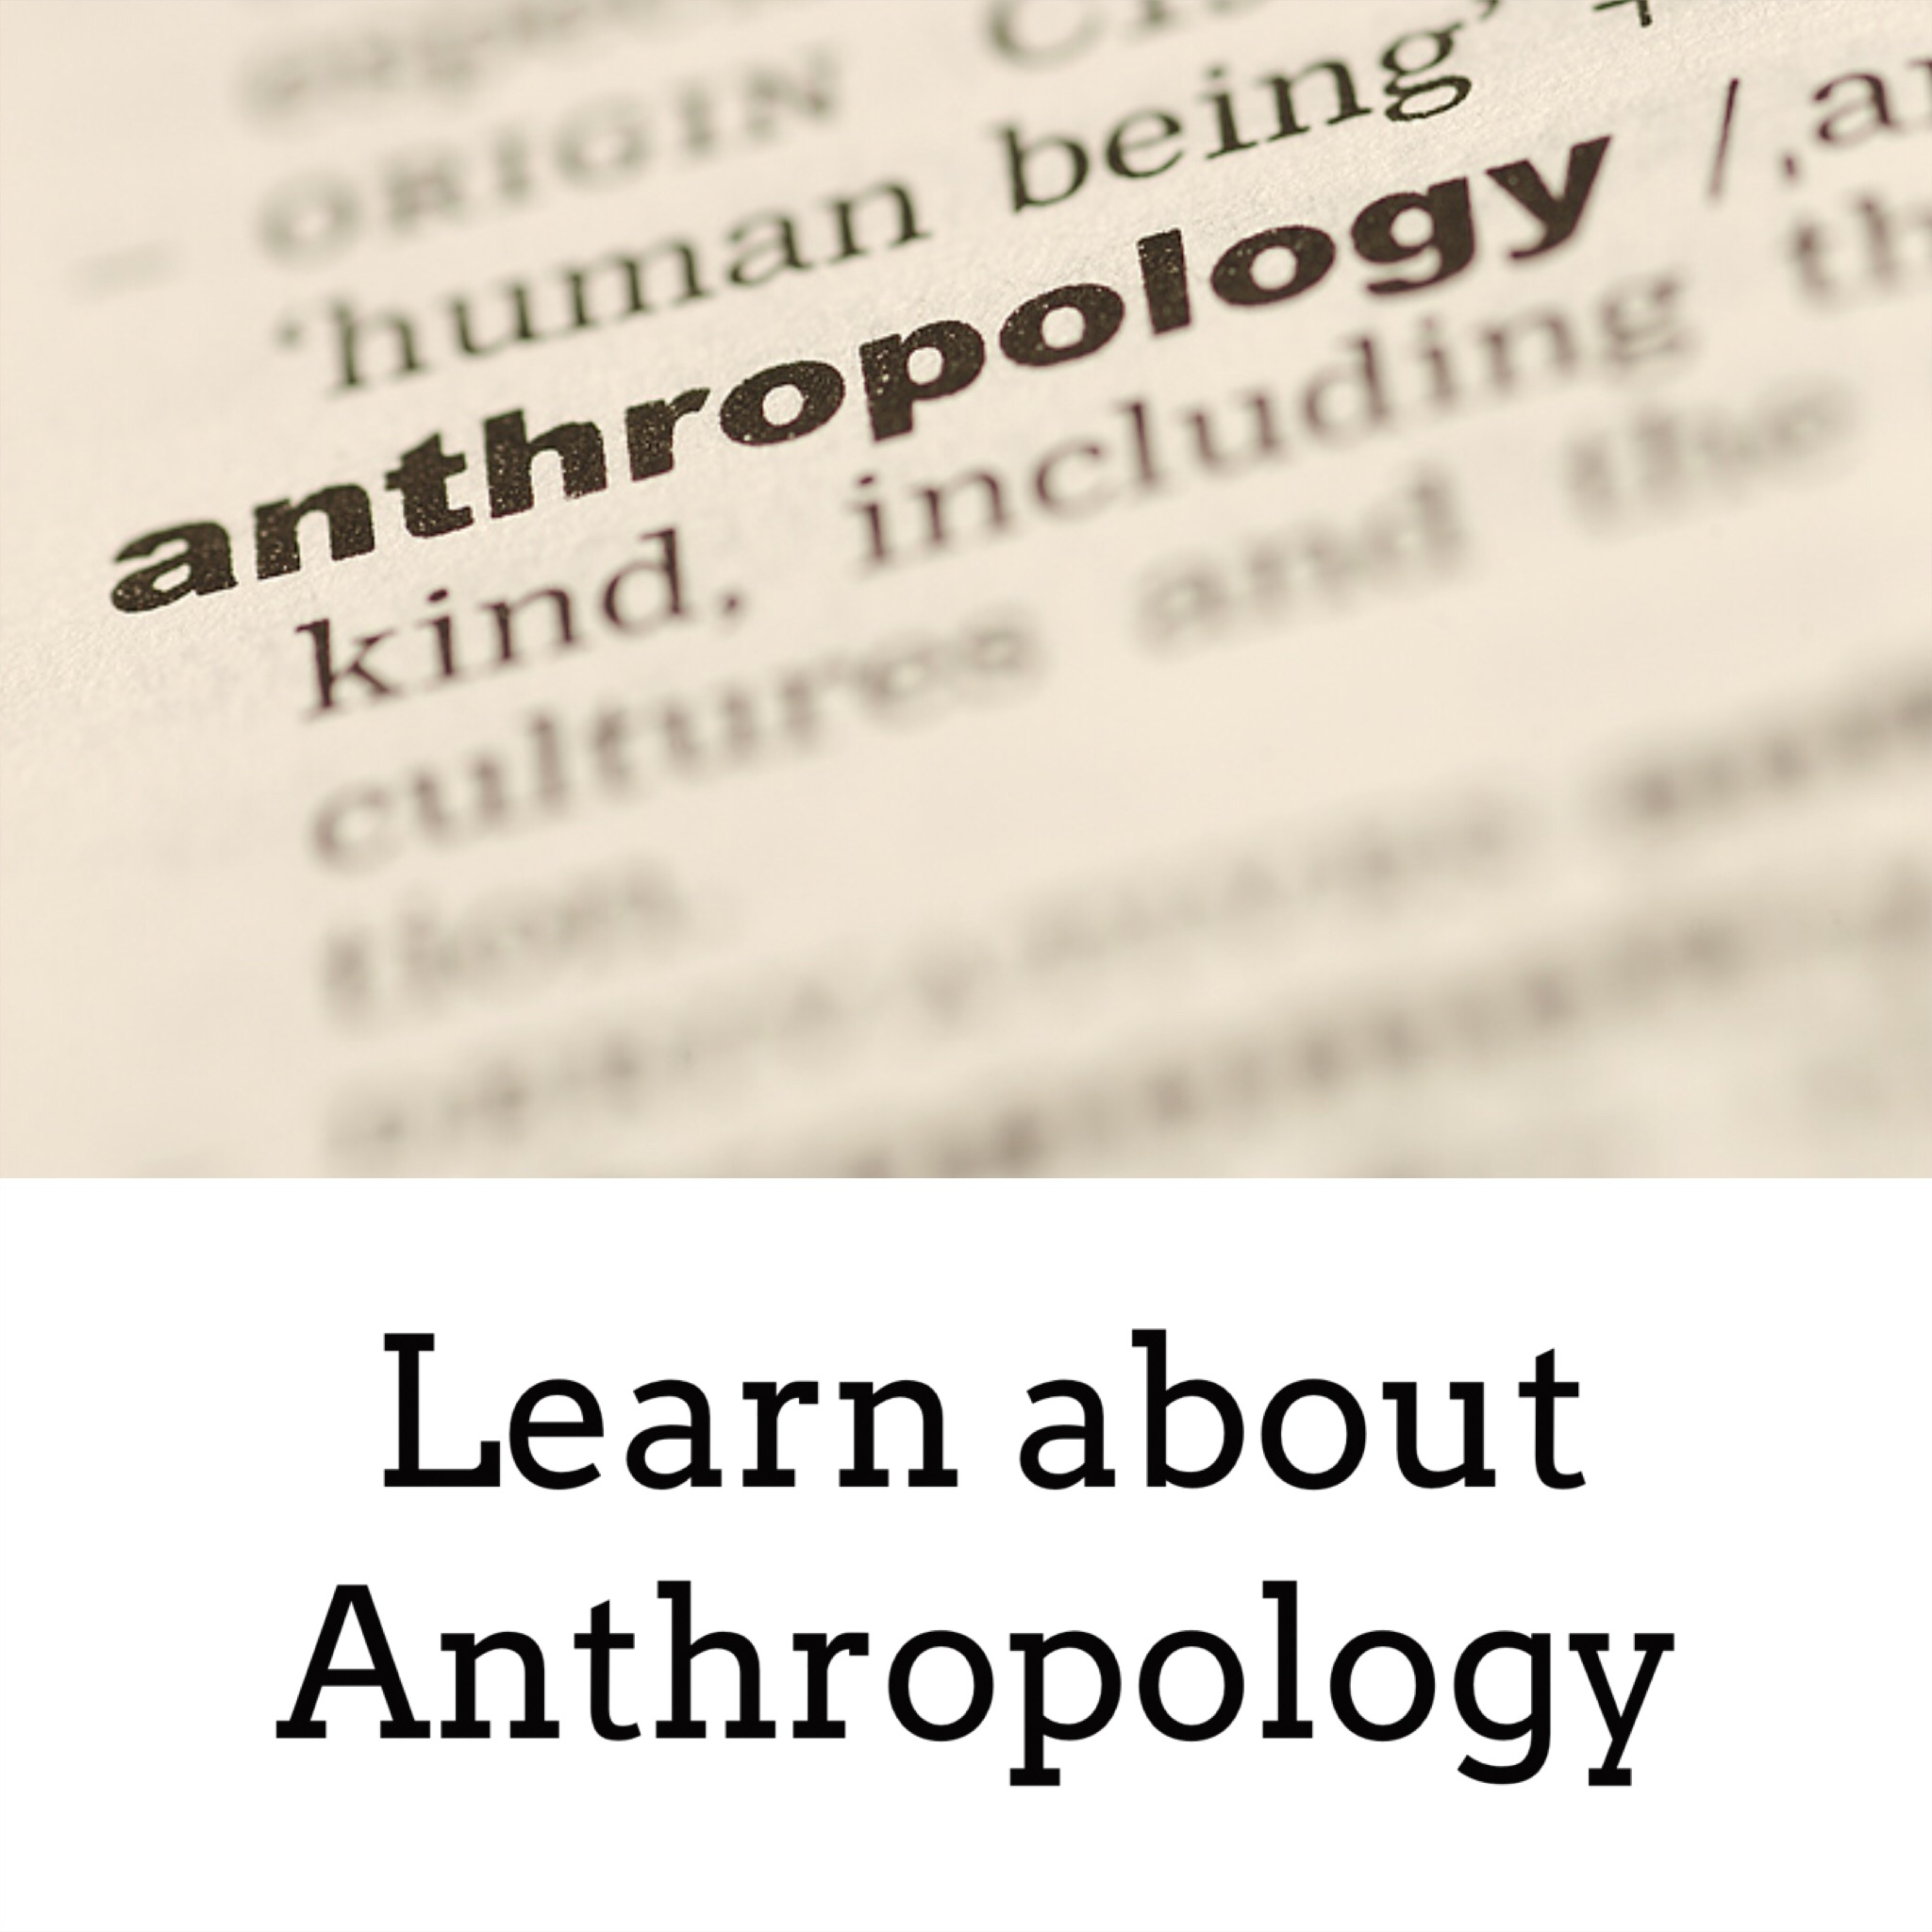 Learn about Anthropology.